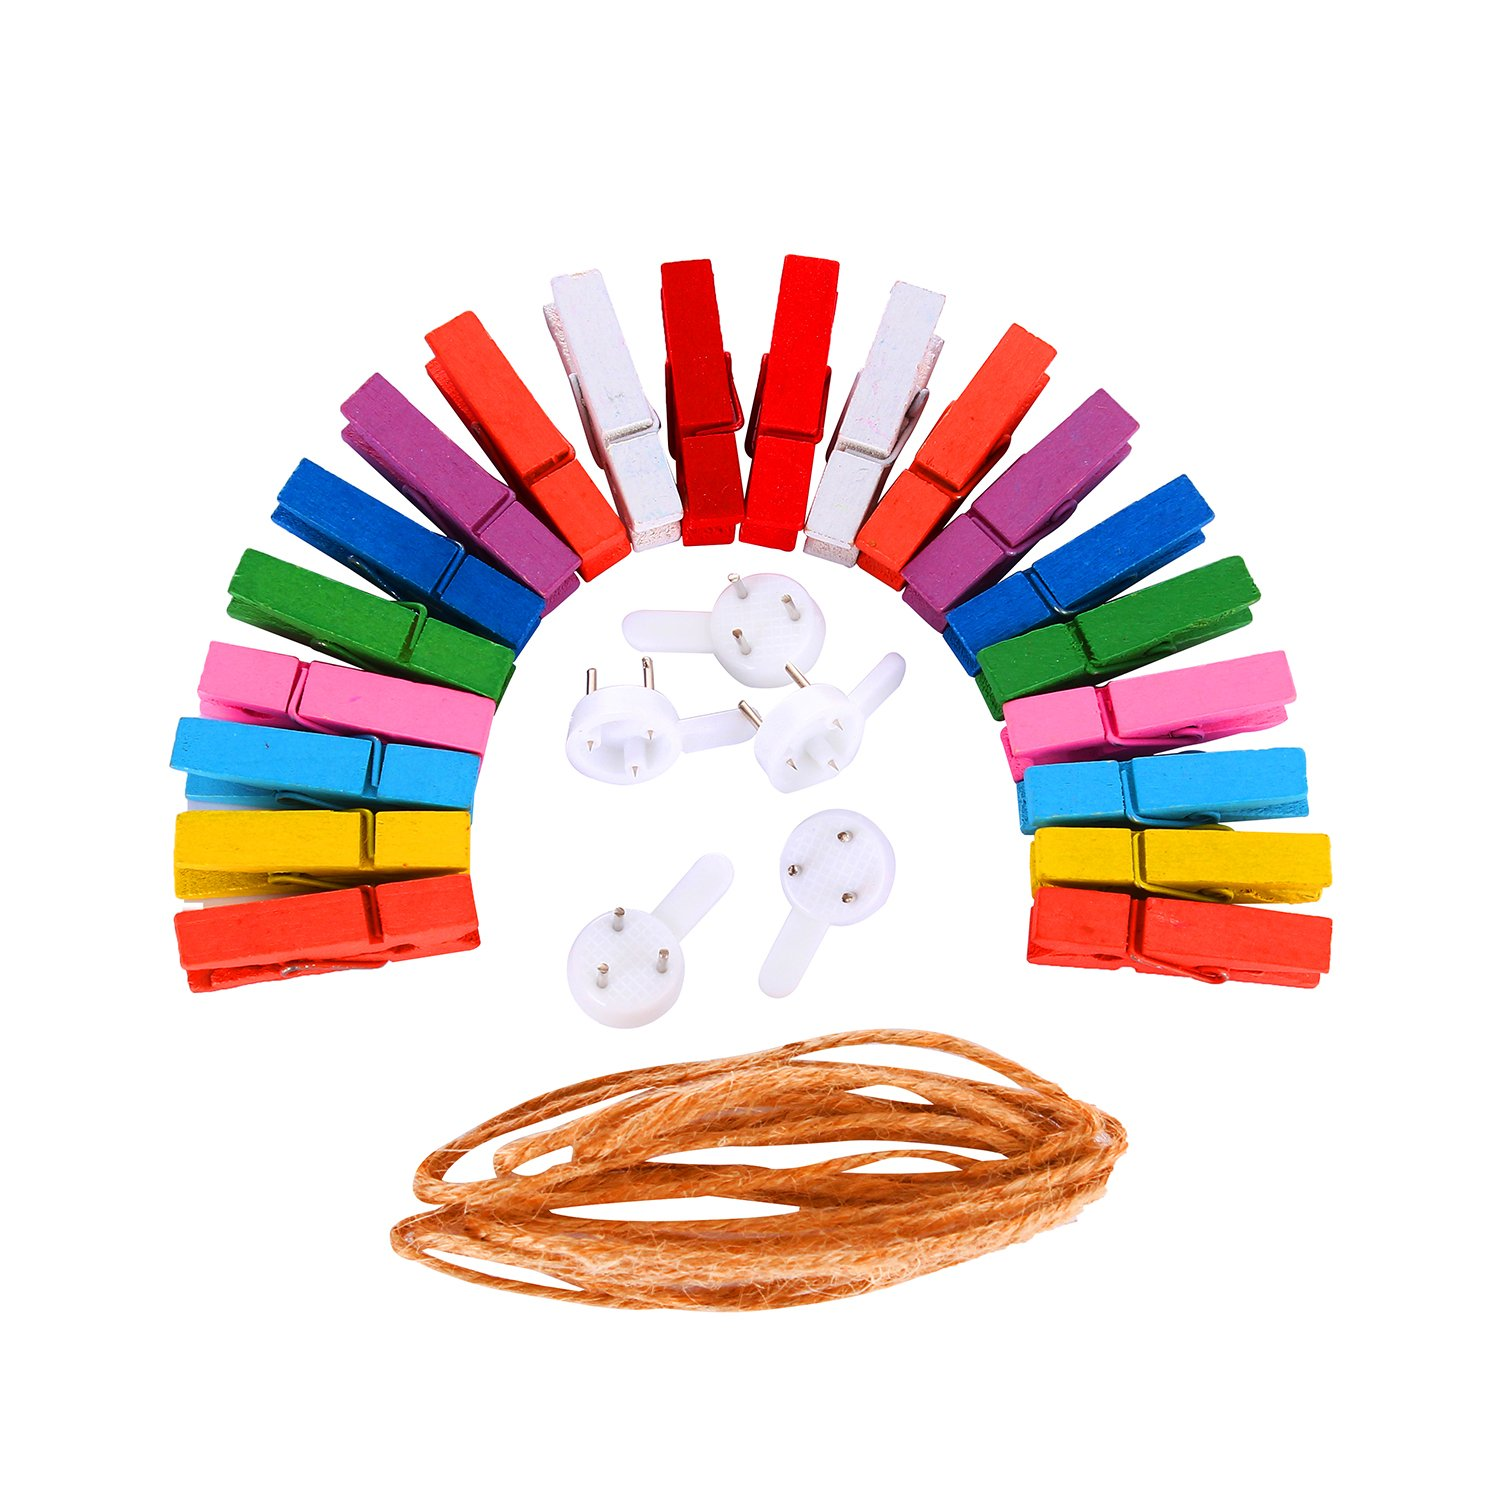 VABNEER Wooden Clothespins Clothes Pegs 100 Pcs Mini Colorful Wood Pegs Photo Clips + Approx 25M Jute Twine + 10 Pcs Traceless Nail